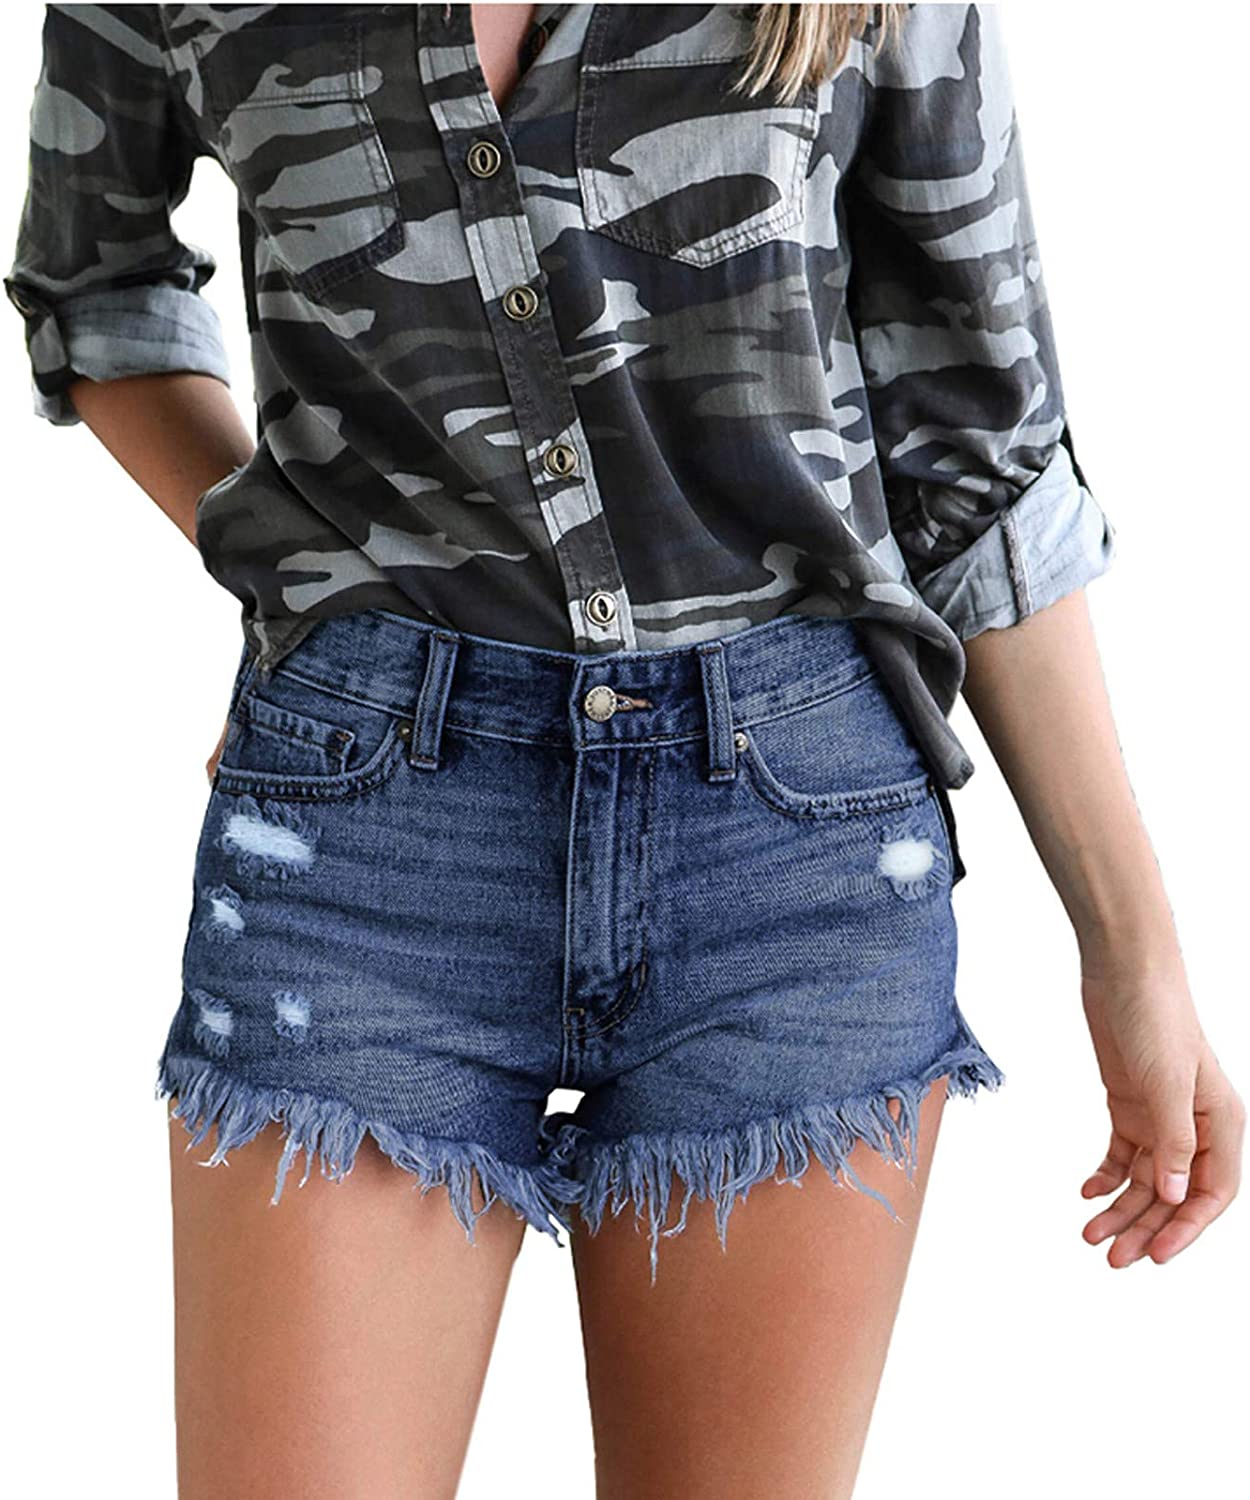 BEIBEIA Womens Denim Hole Shorts, 2021 Summer Fashion Frayed Hem Ripped Distressed Jeans Button Casual Sexy Hot Shorts